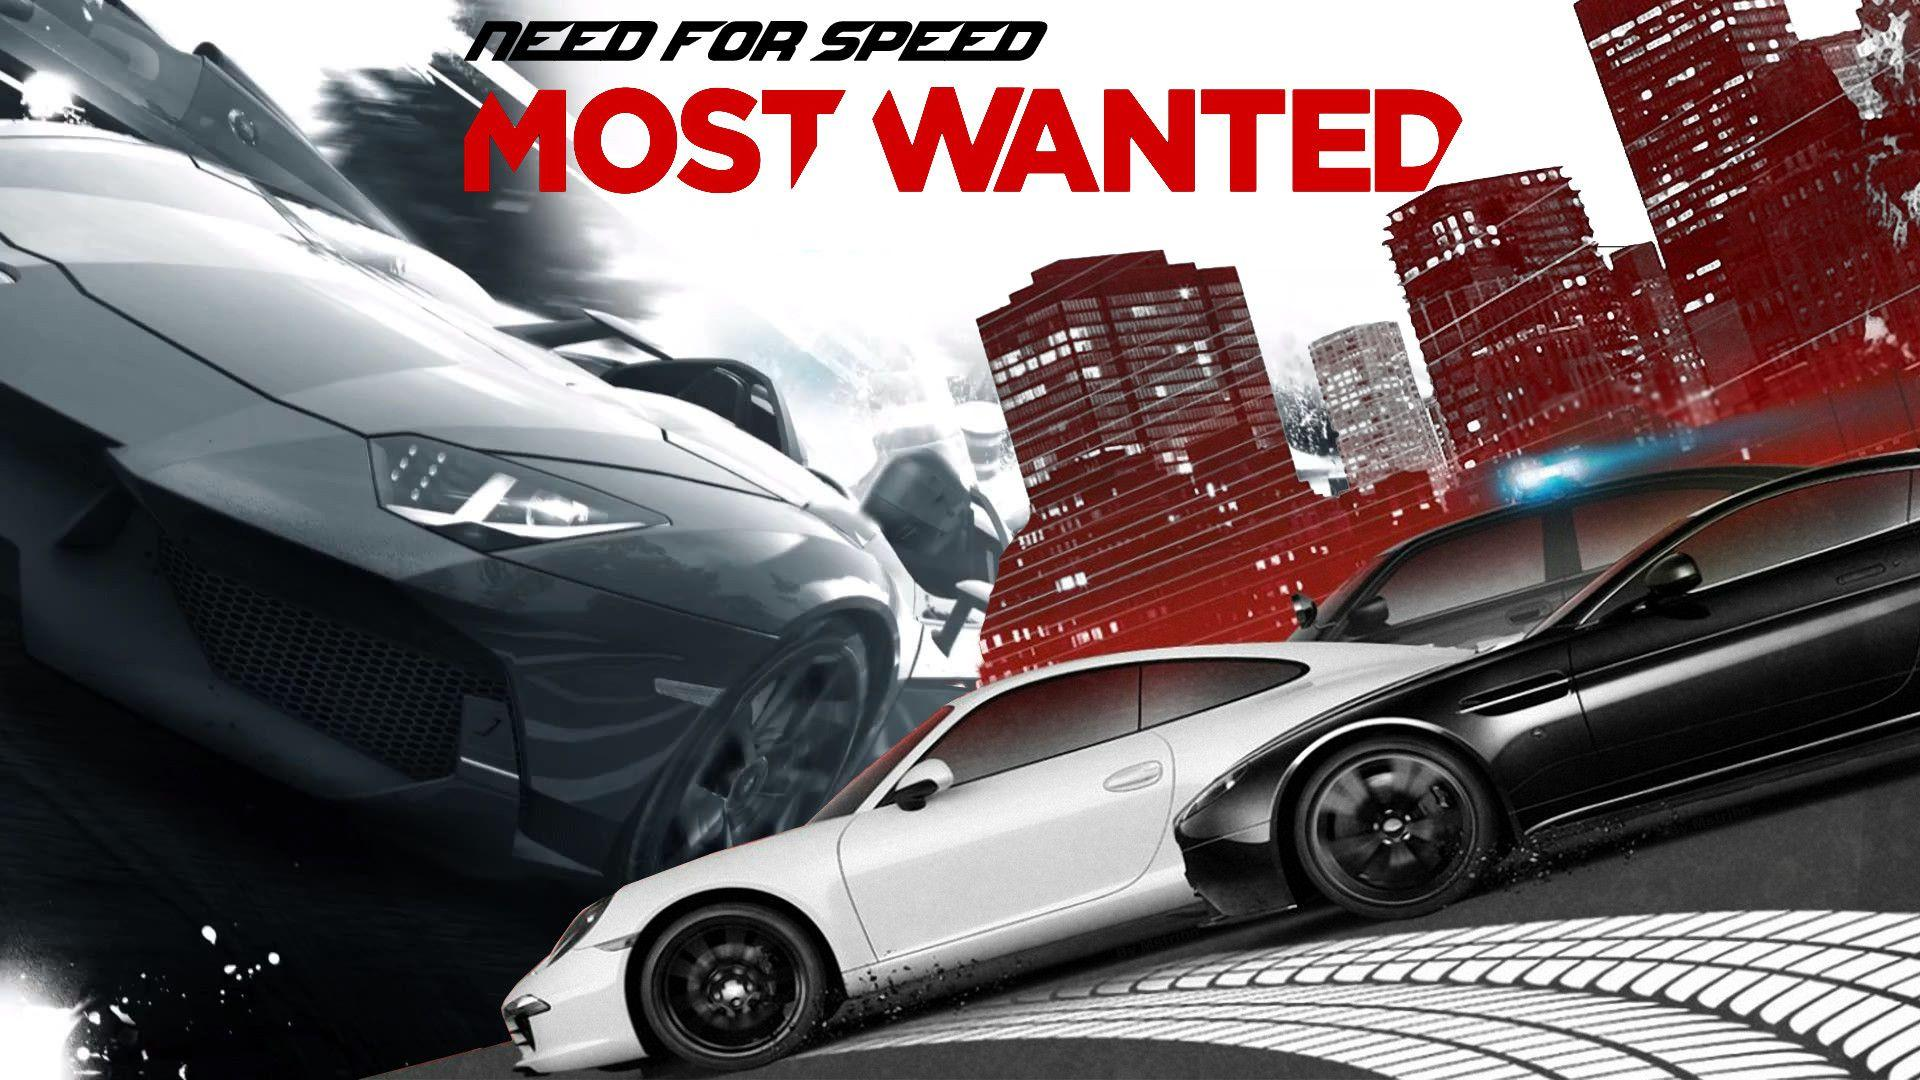 Need for Speed: Most Wanted - Descargar